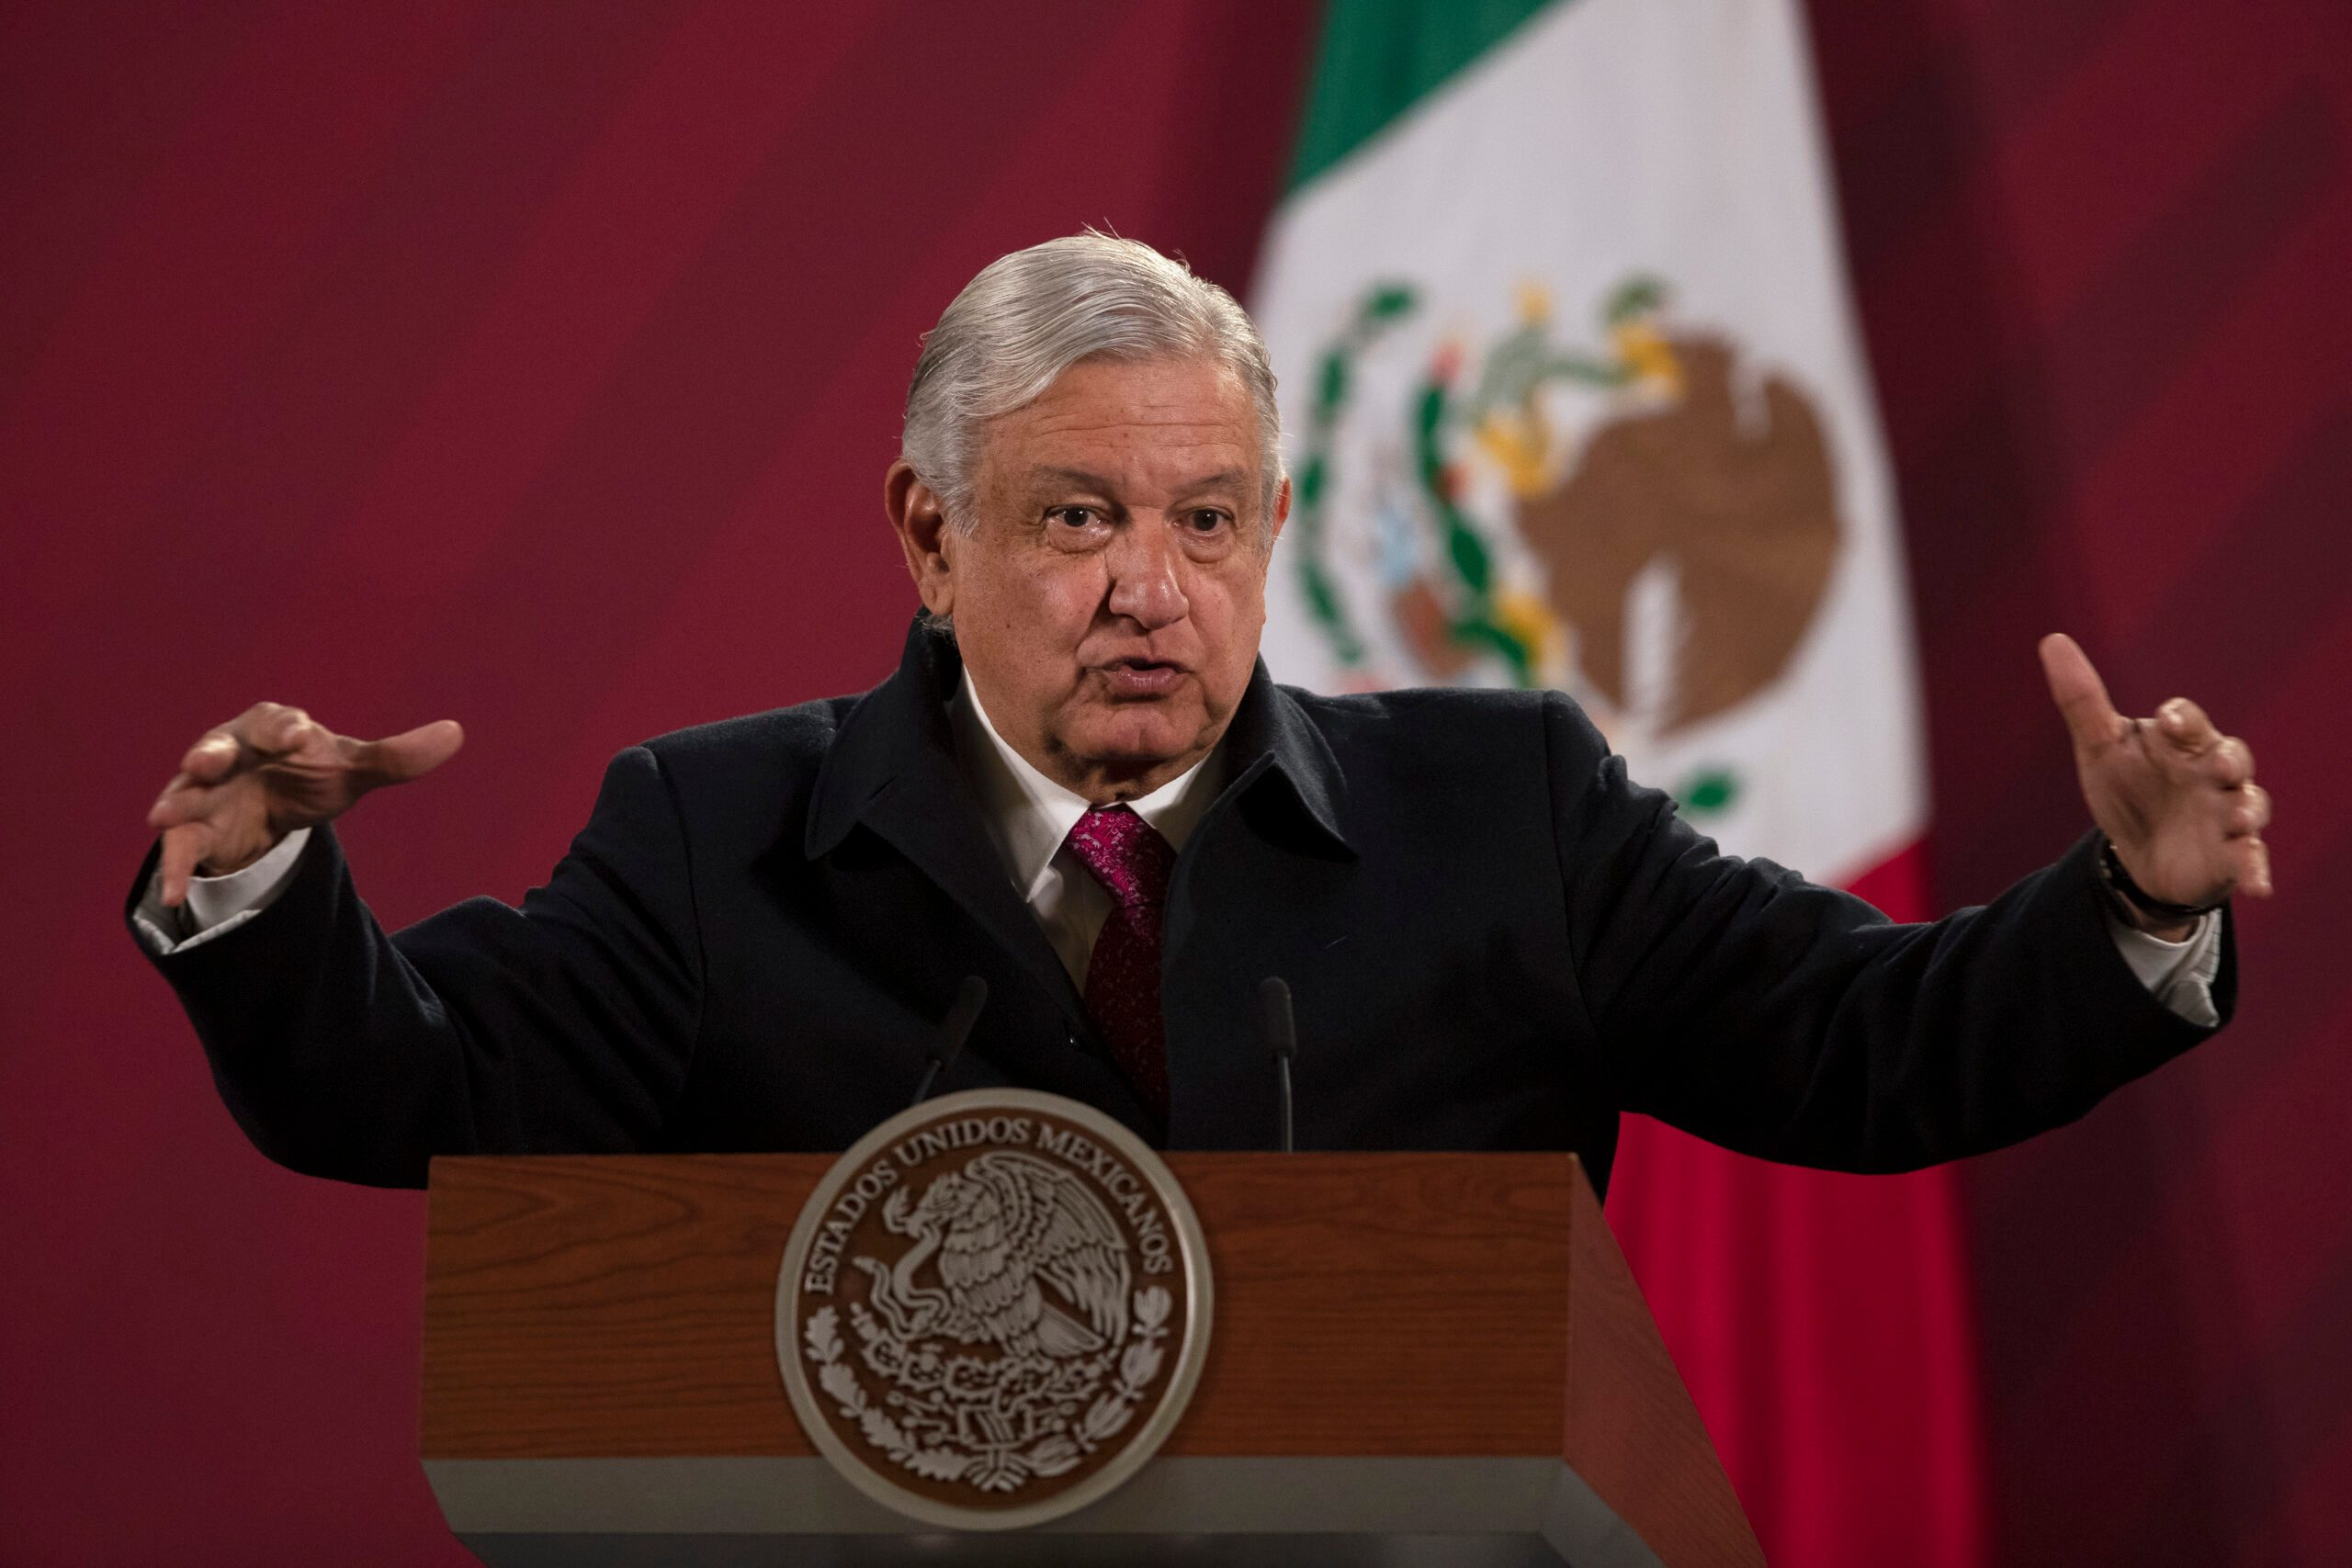 Mexican President Tests Positive for COVID-19, Symptoms Mild - snopes